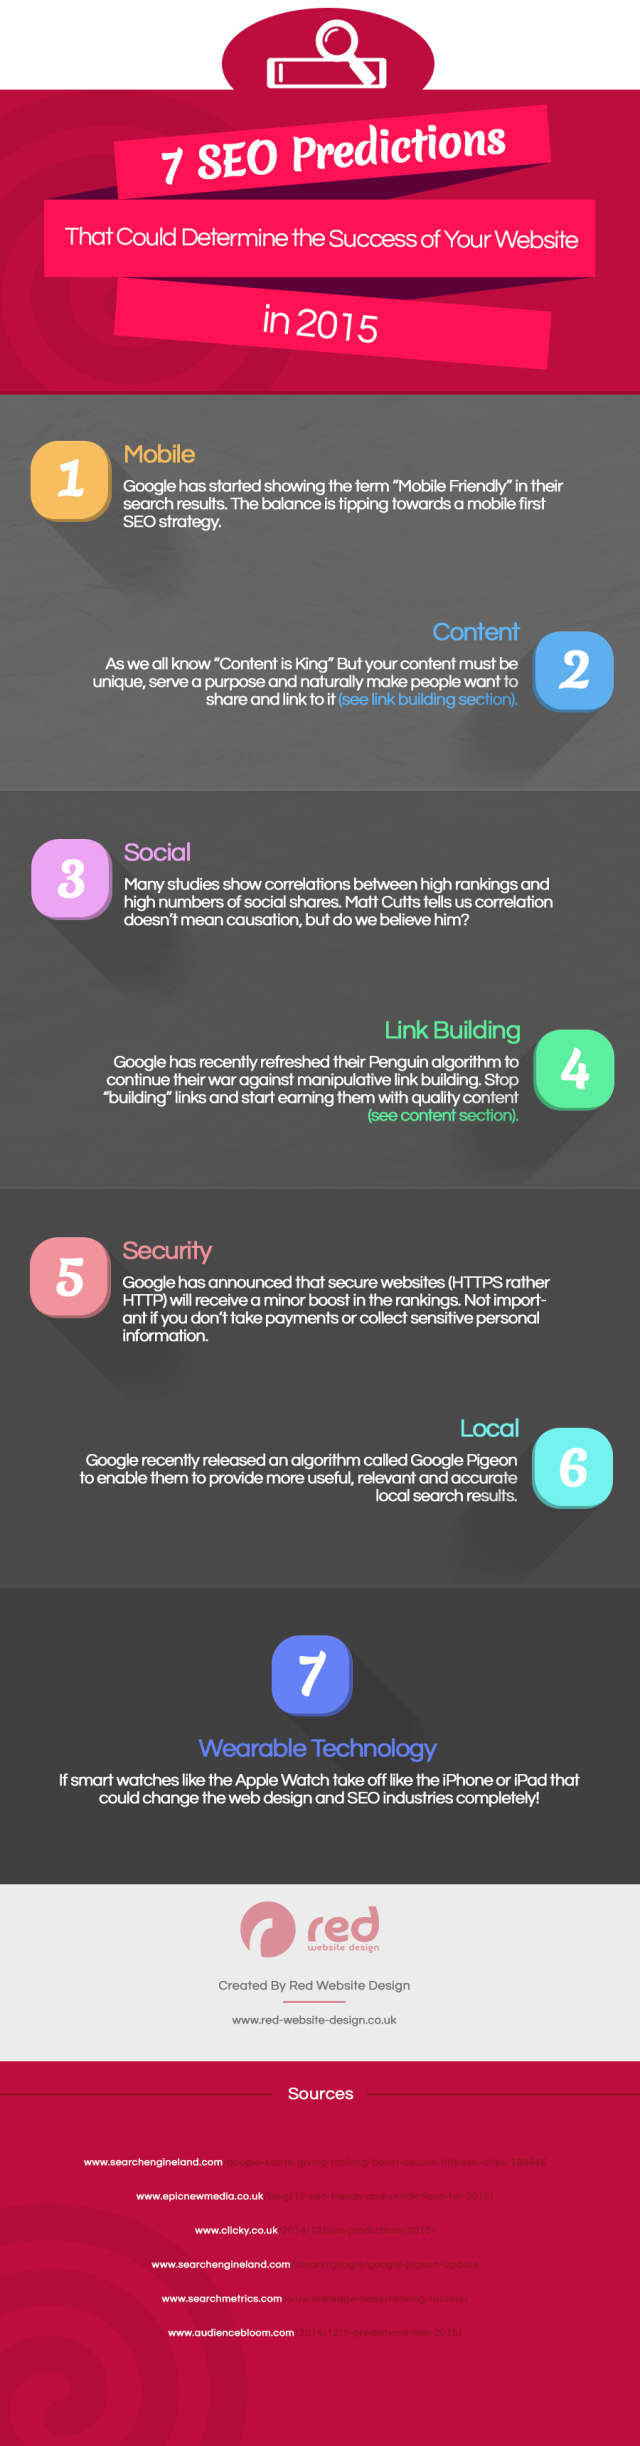 seo tips for 2015